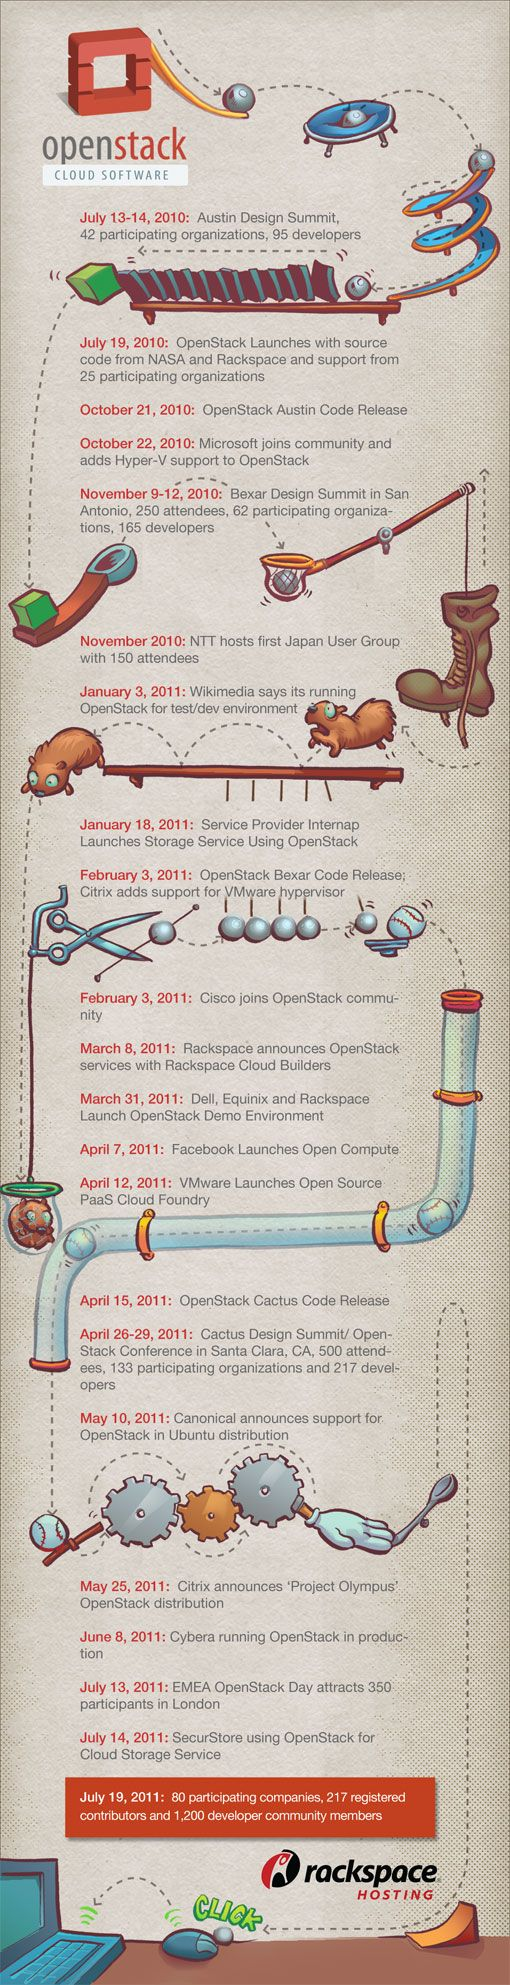 OpenStack Cloud Software timeline, since its launch date in July 2010.